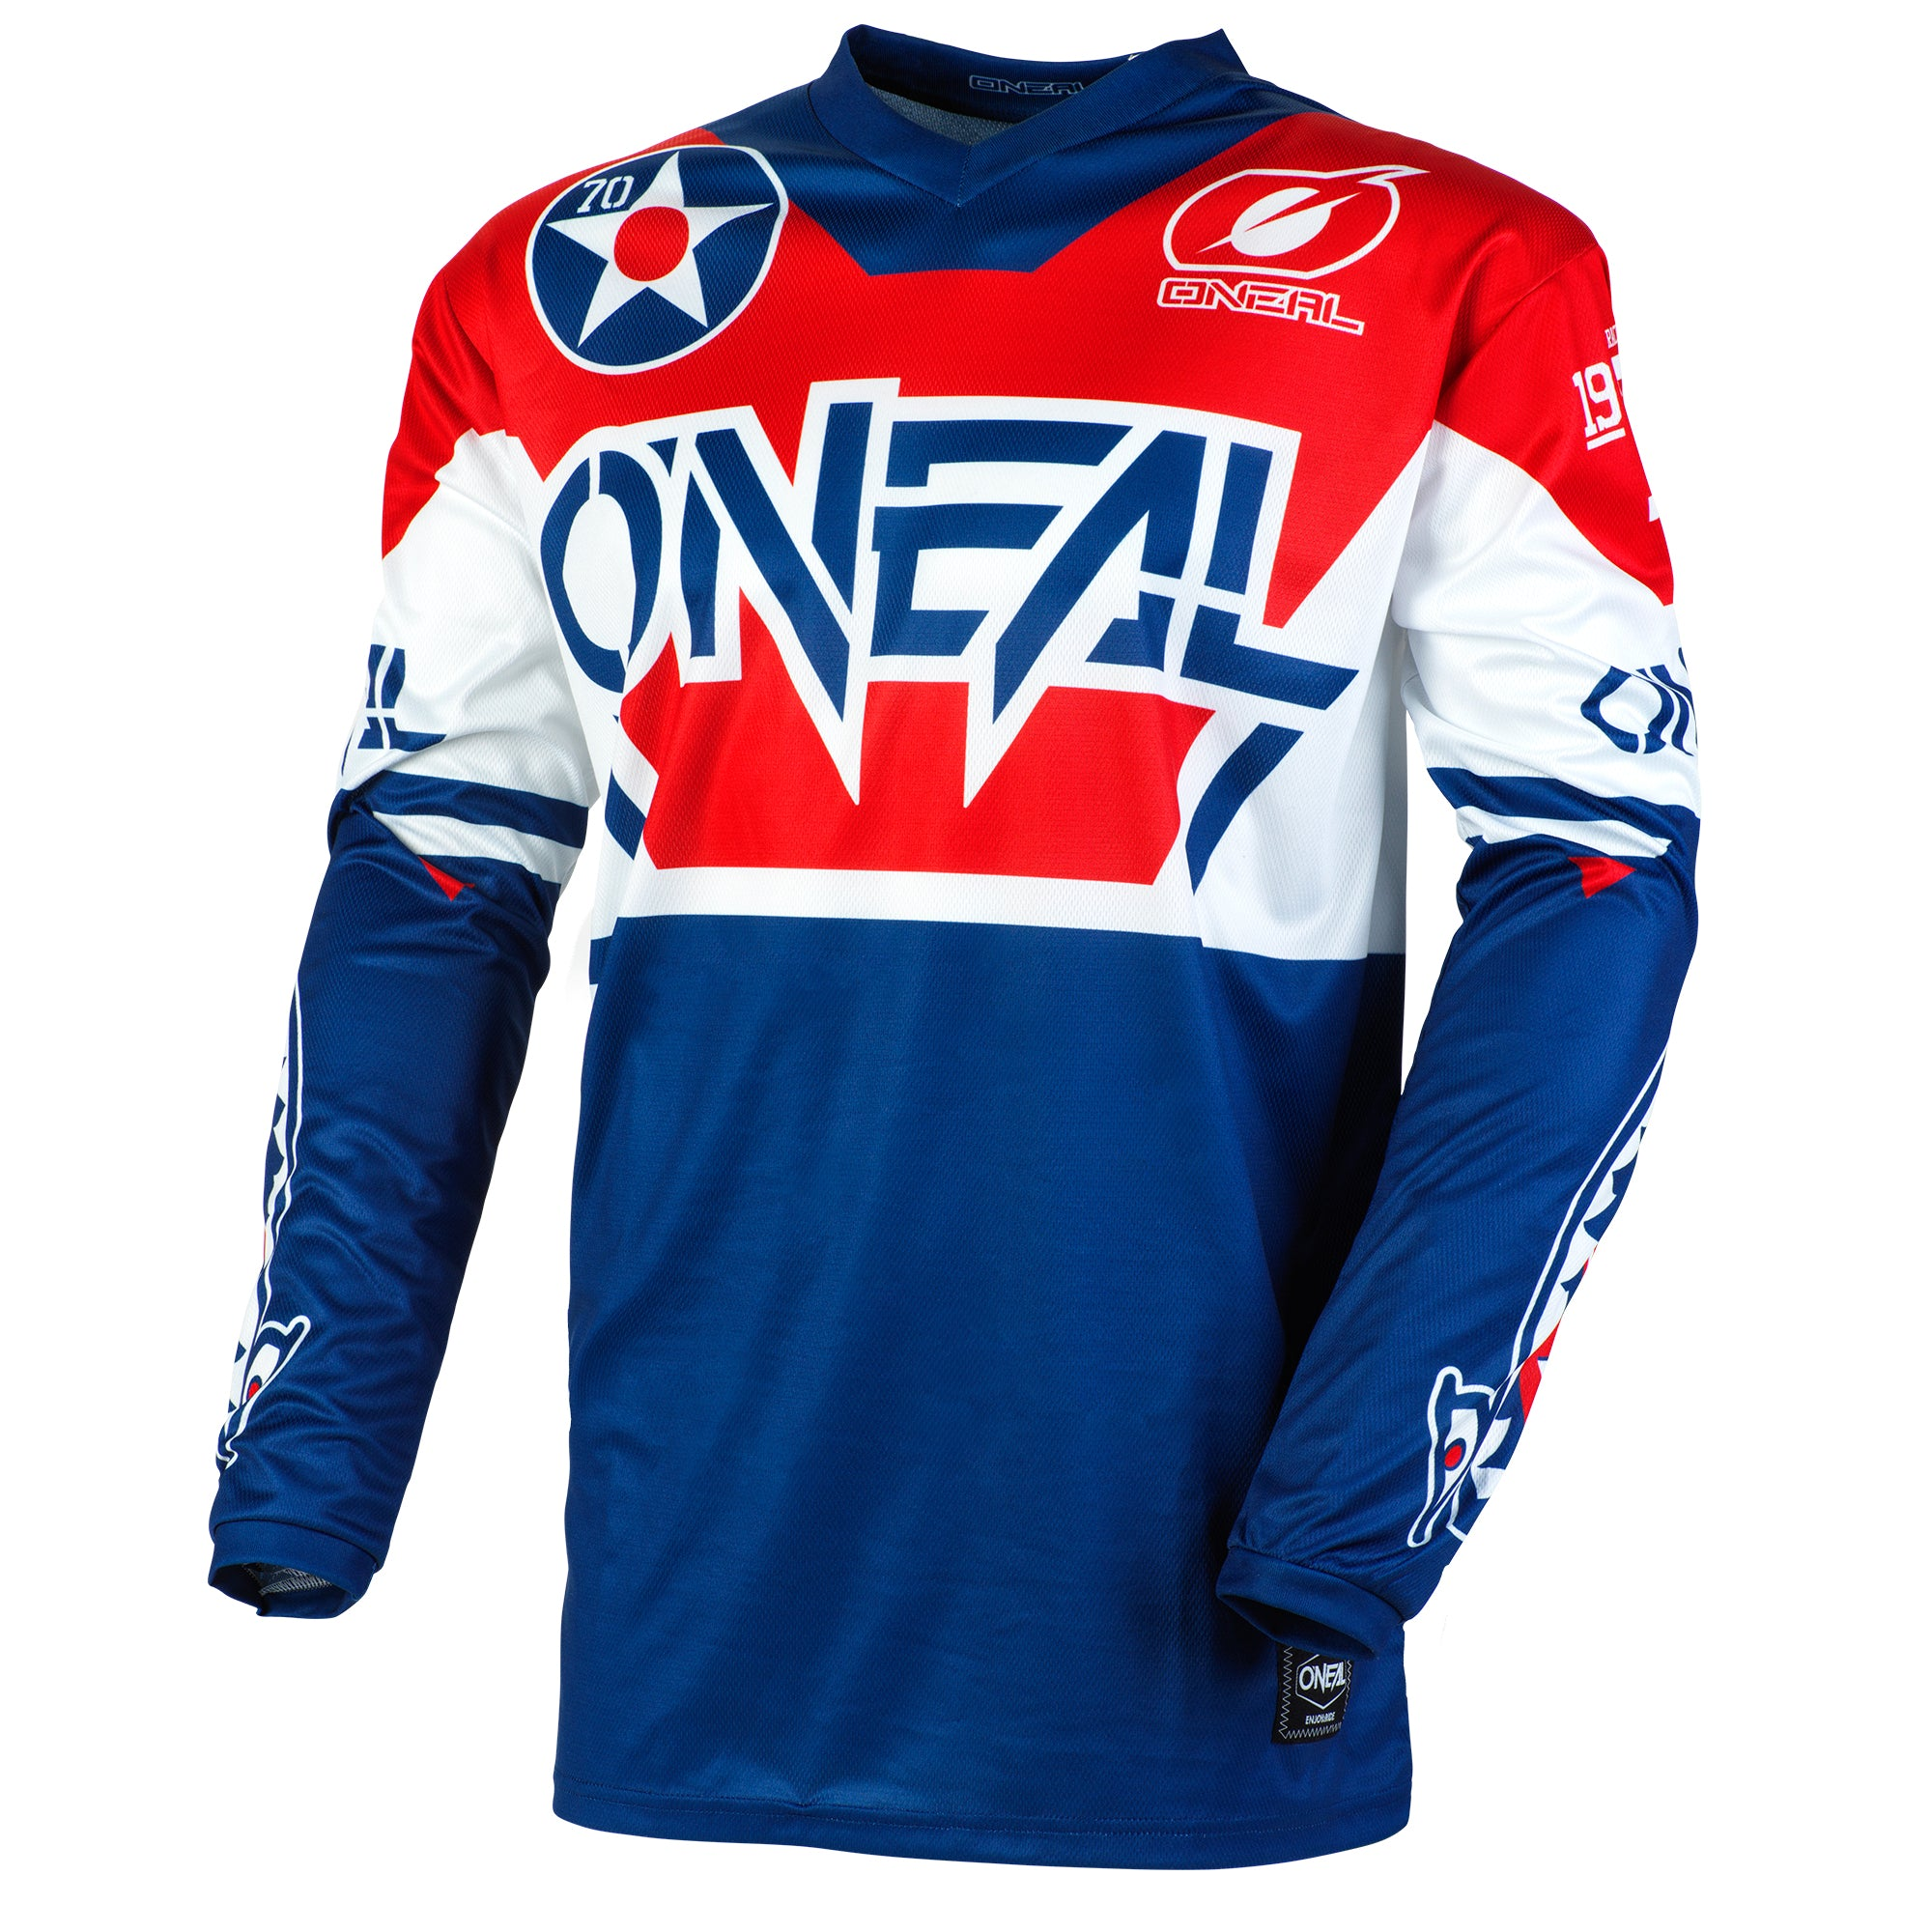 Jersey: ONEAL 2020 ELEMENT WARHAWK Blue/Red